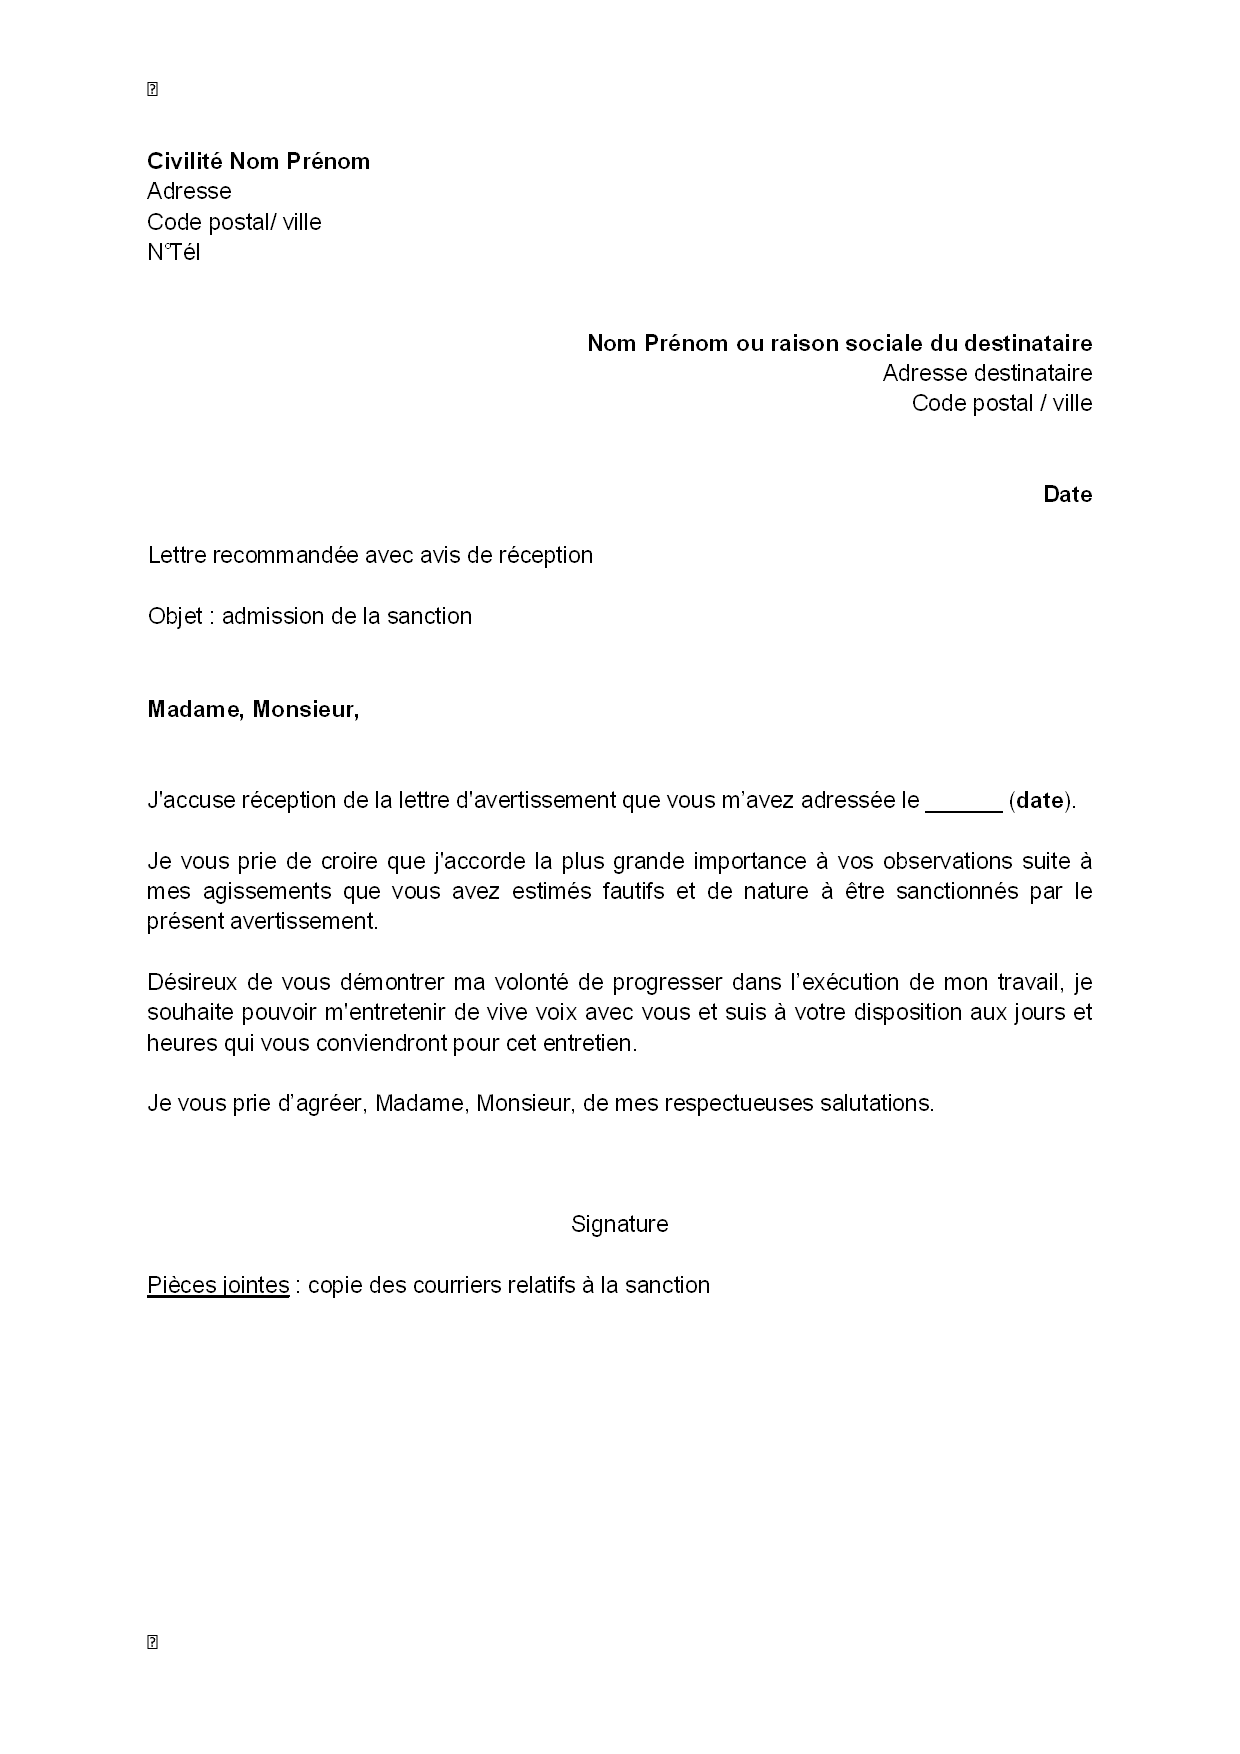 Pdf Exemple D Accuse De Reception D Une Lettre De Demission